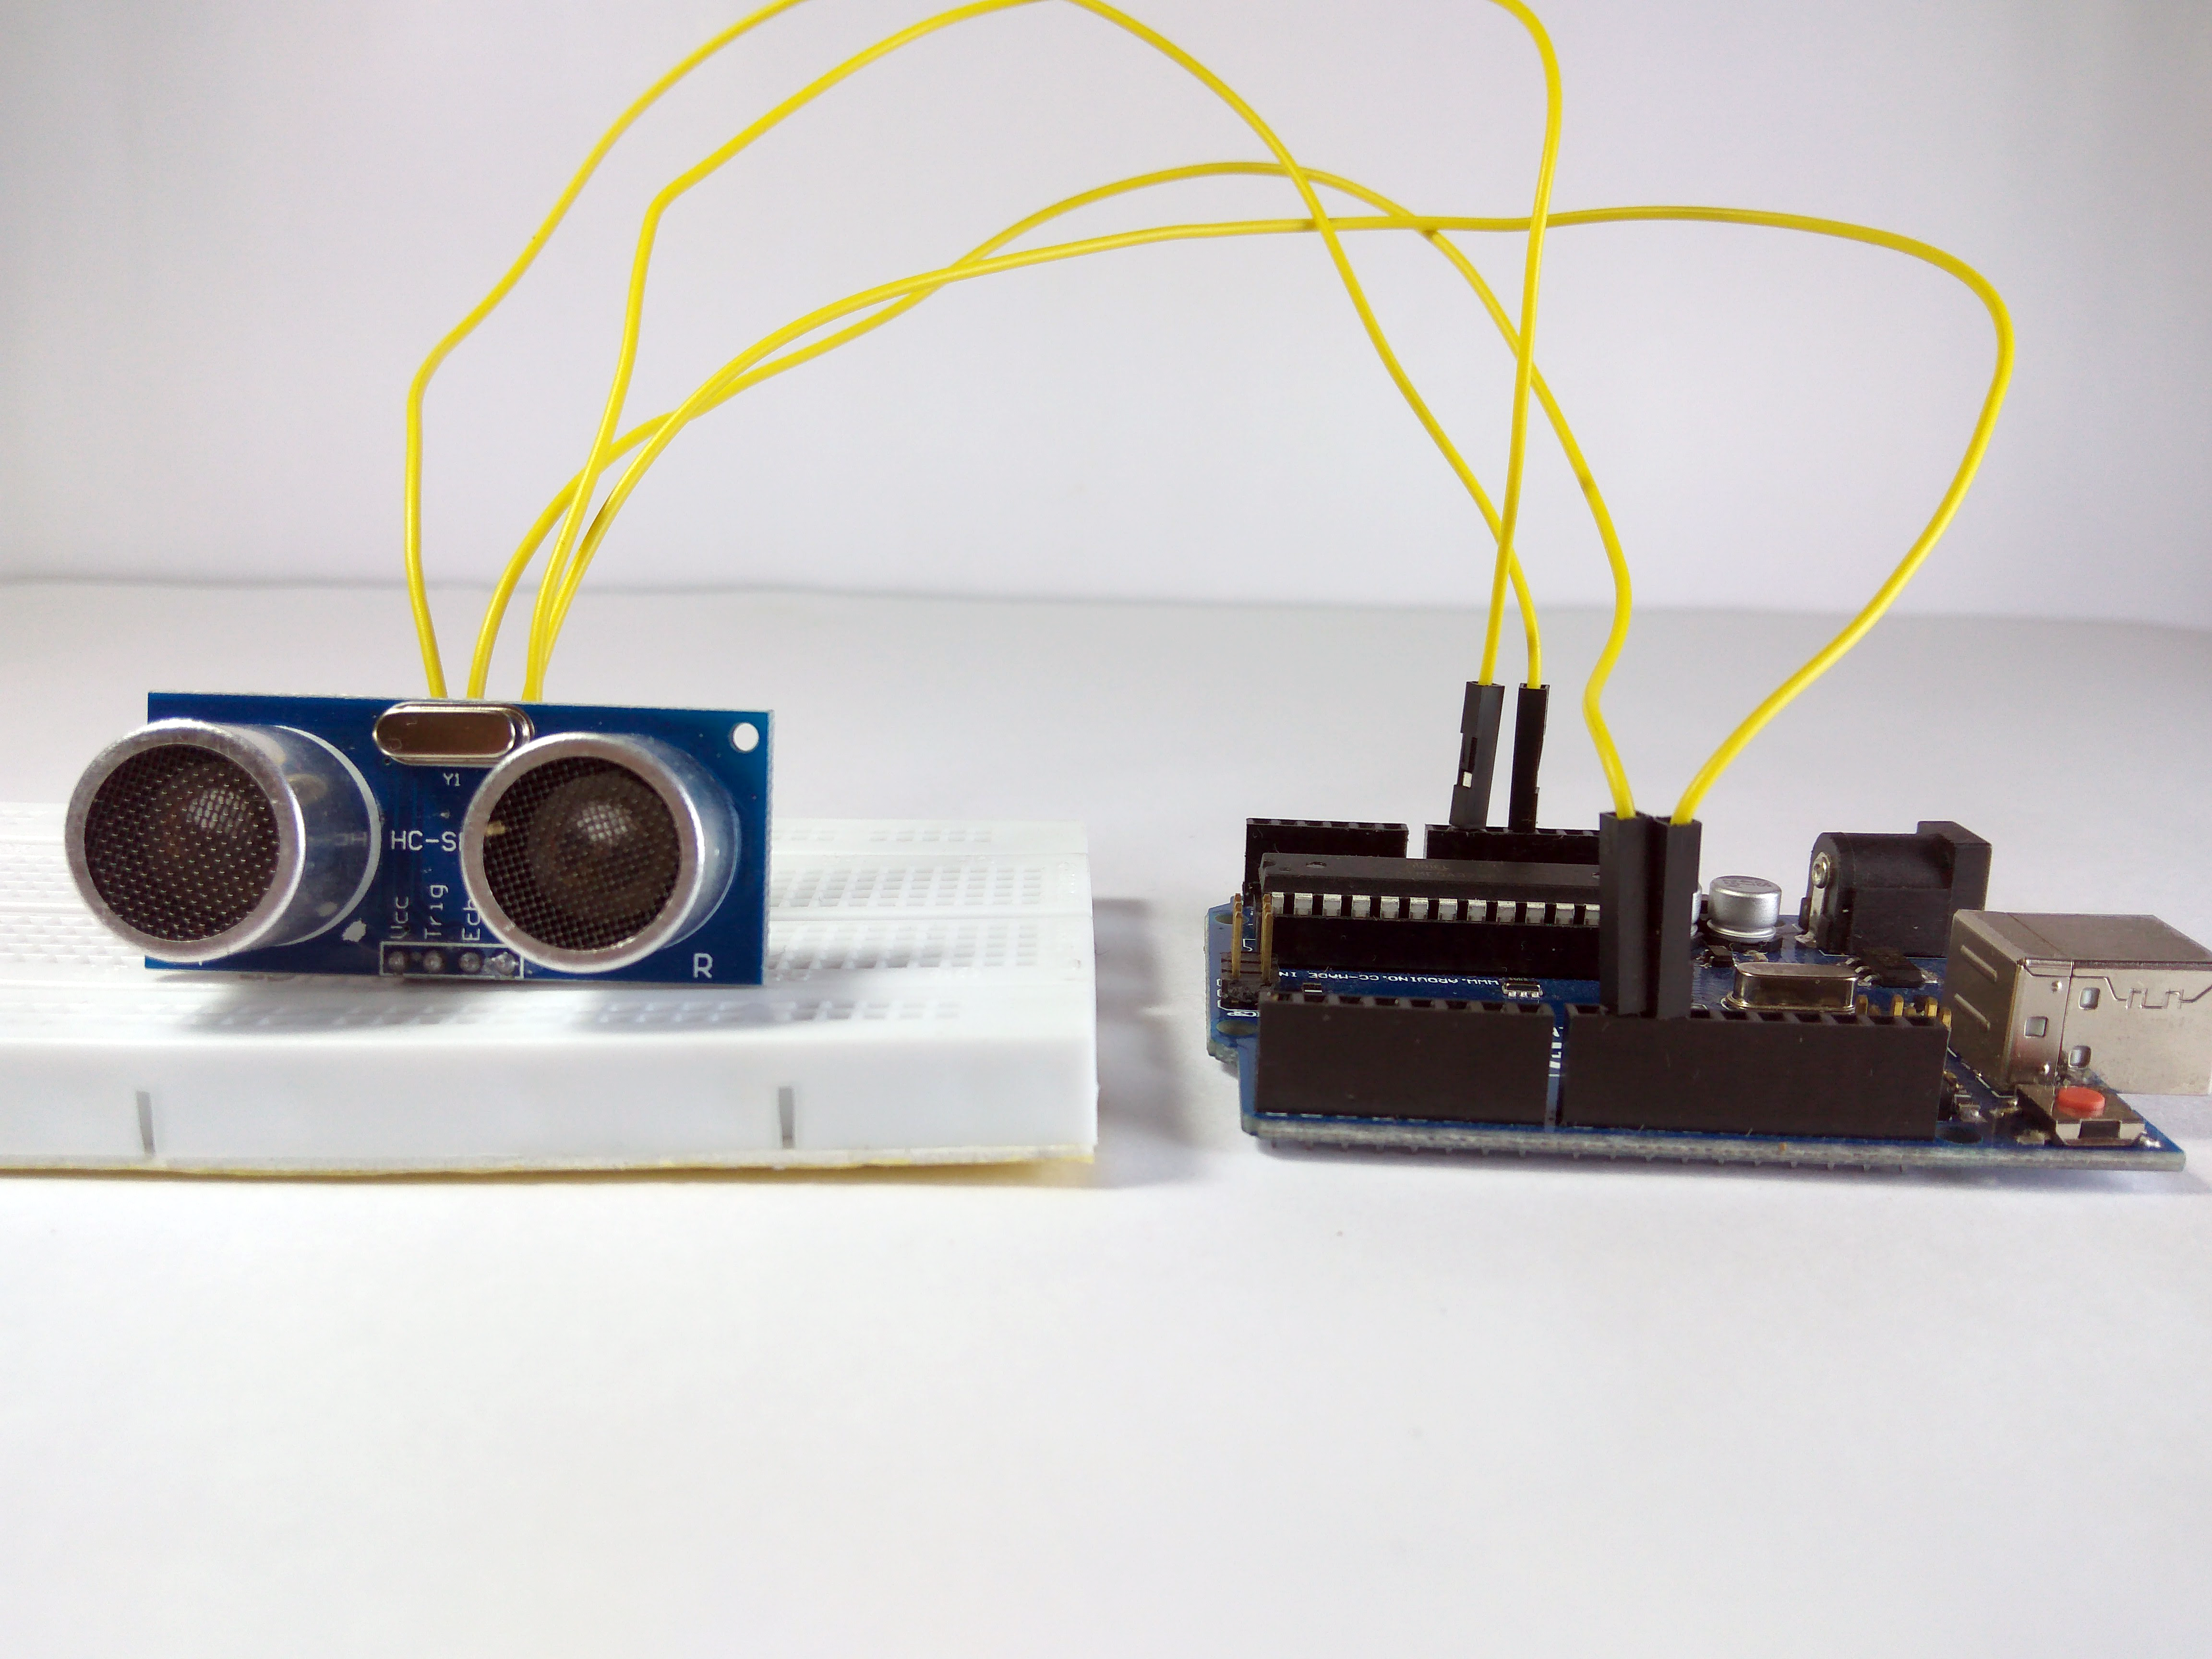 Picture of Interfacing Ultrasonic Sensor With Arduino